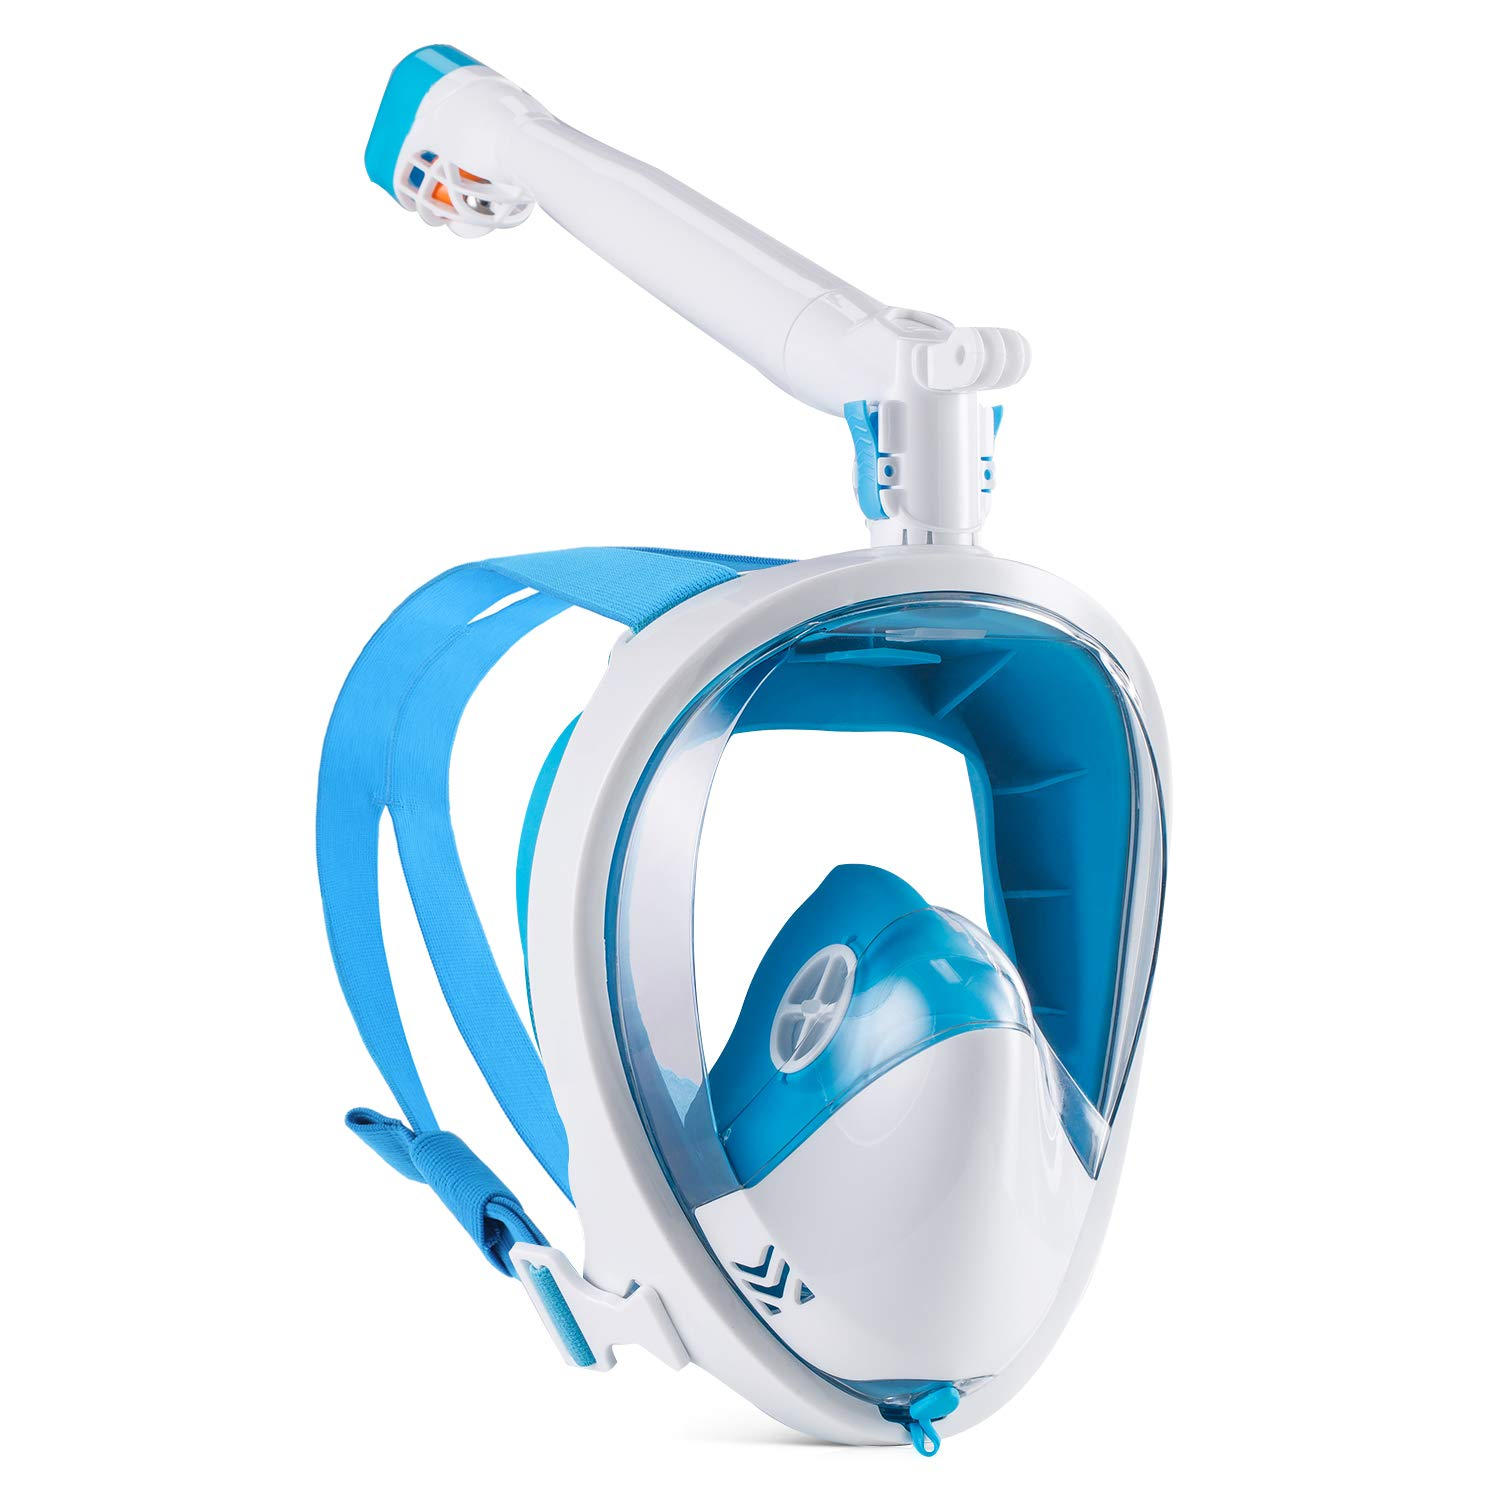 GroHoze Full Face GoPro Compatible Snorkel Mask with 180/° Panoramic Viewing and Advanced Breathing System for Snorkeling and Diving